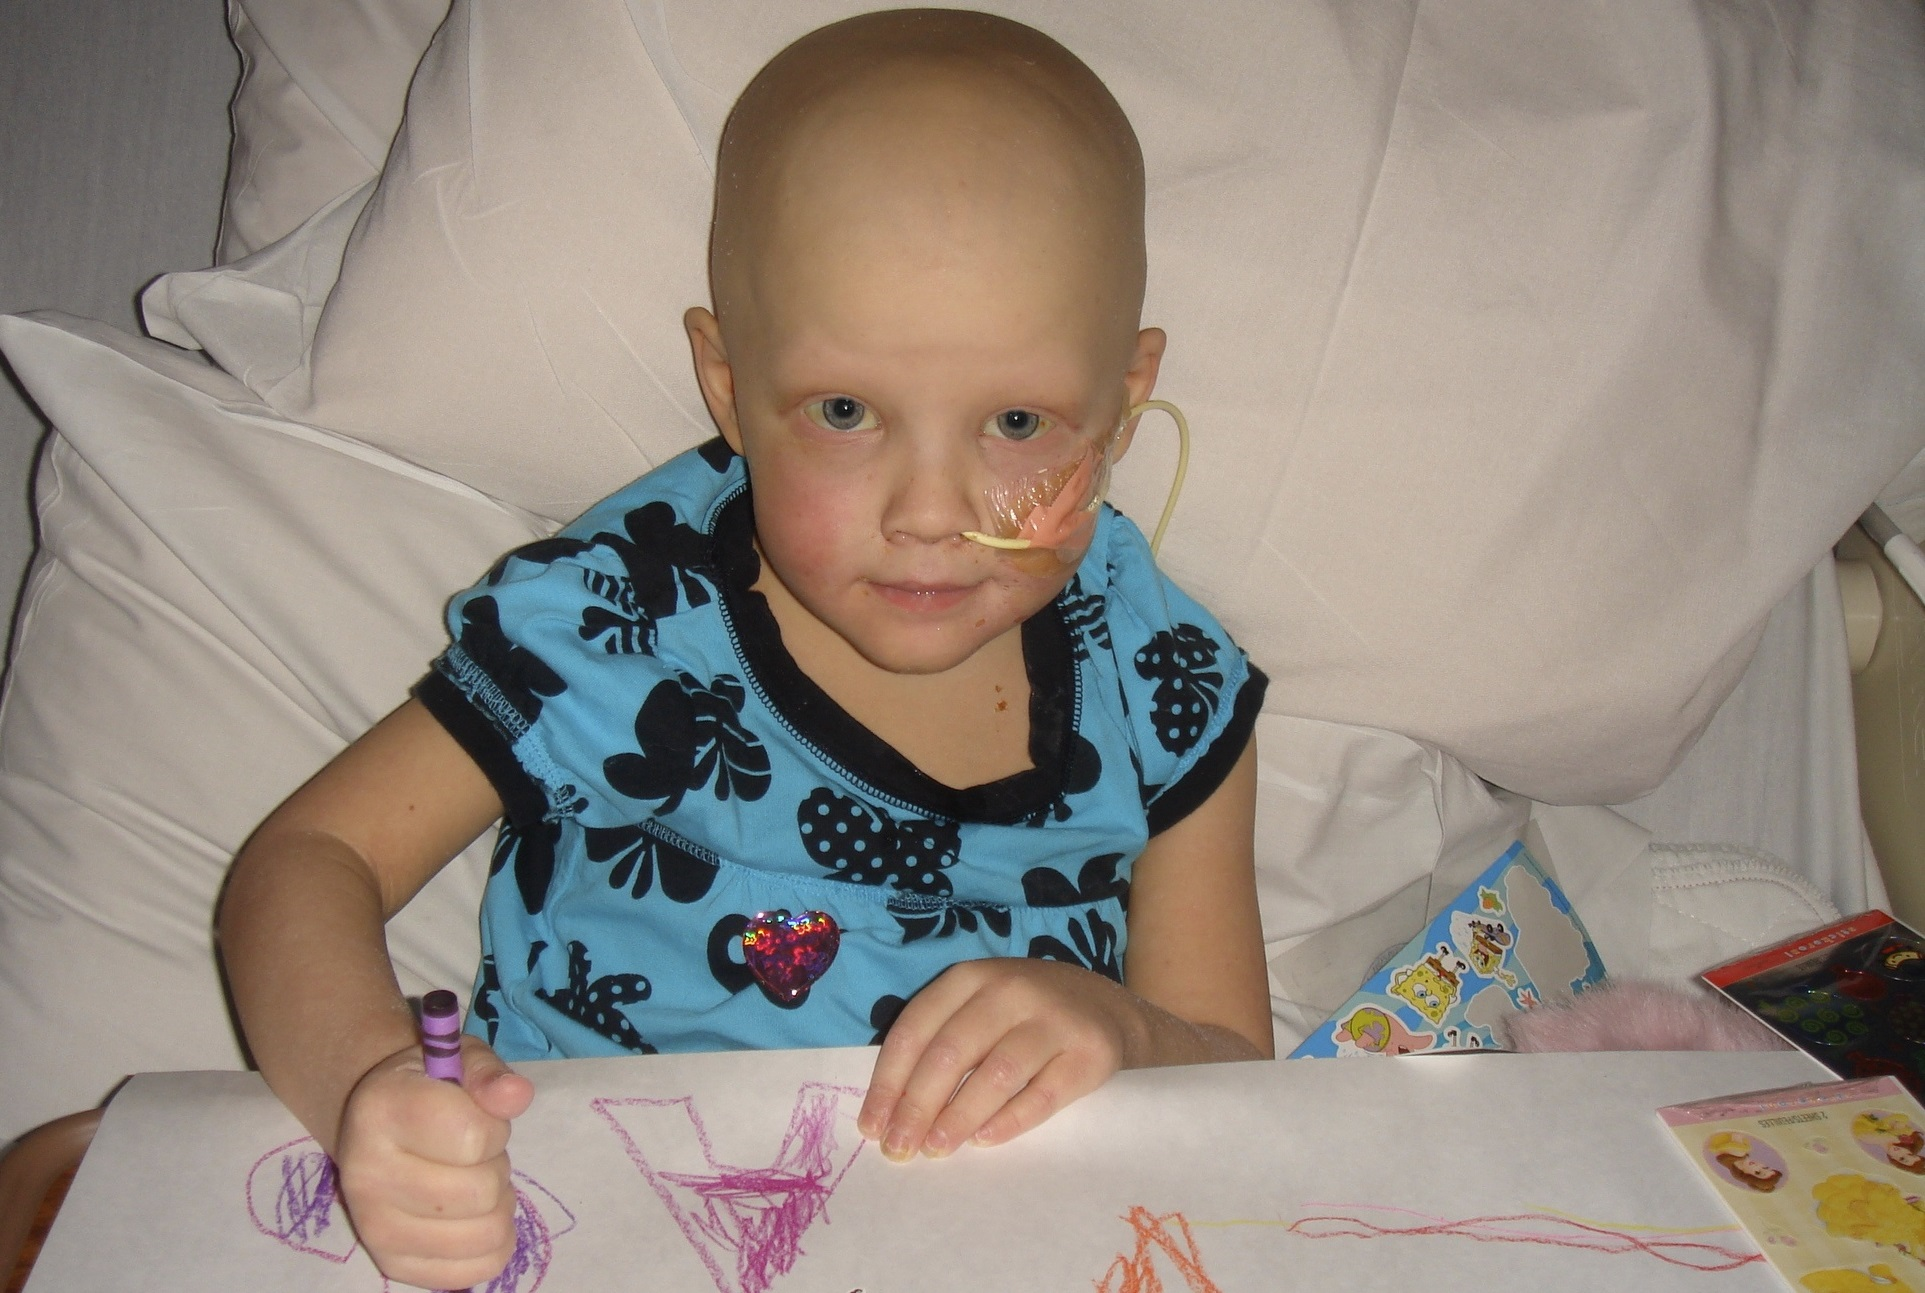 Emily Coughlin, pediatric, neuroblastoma